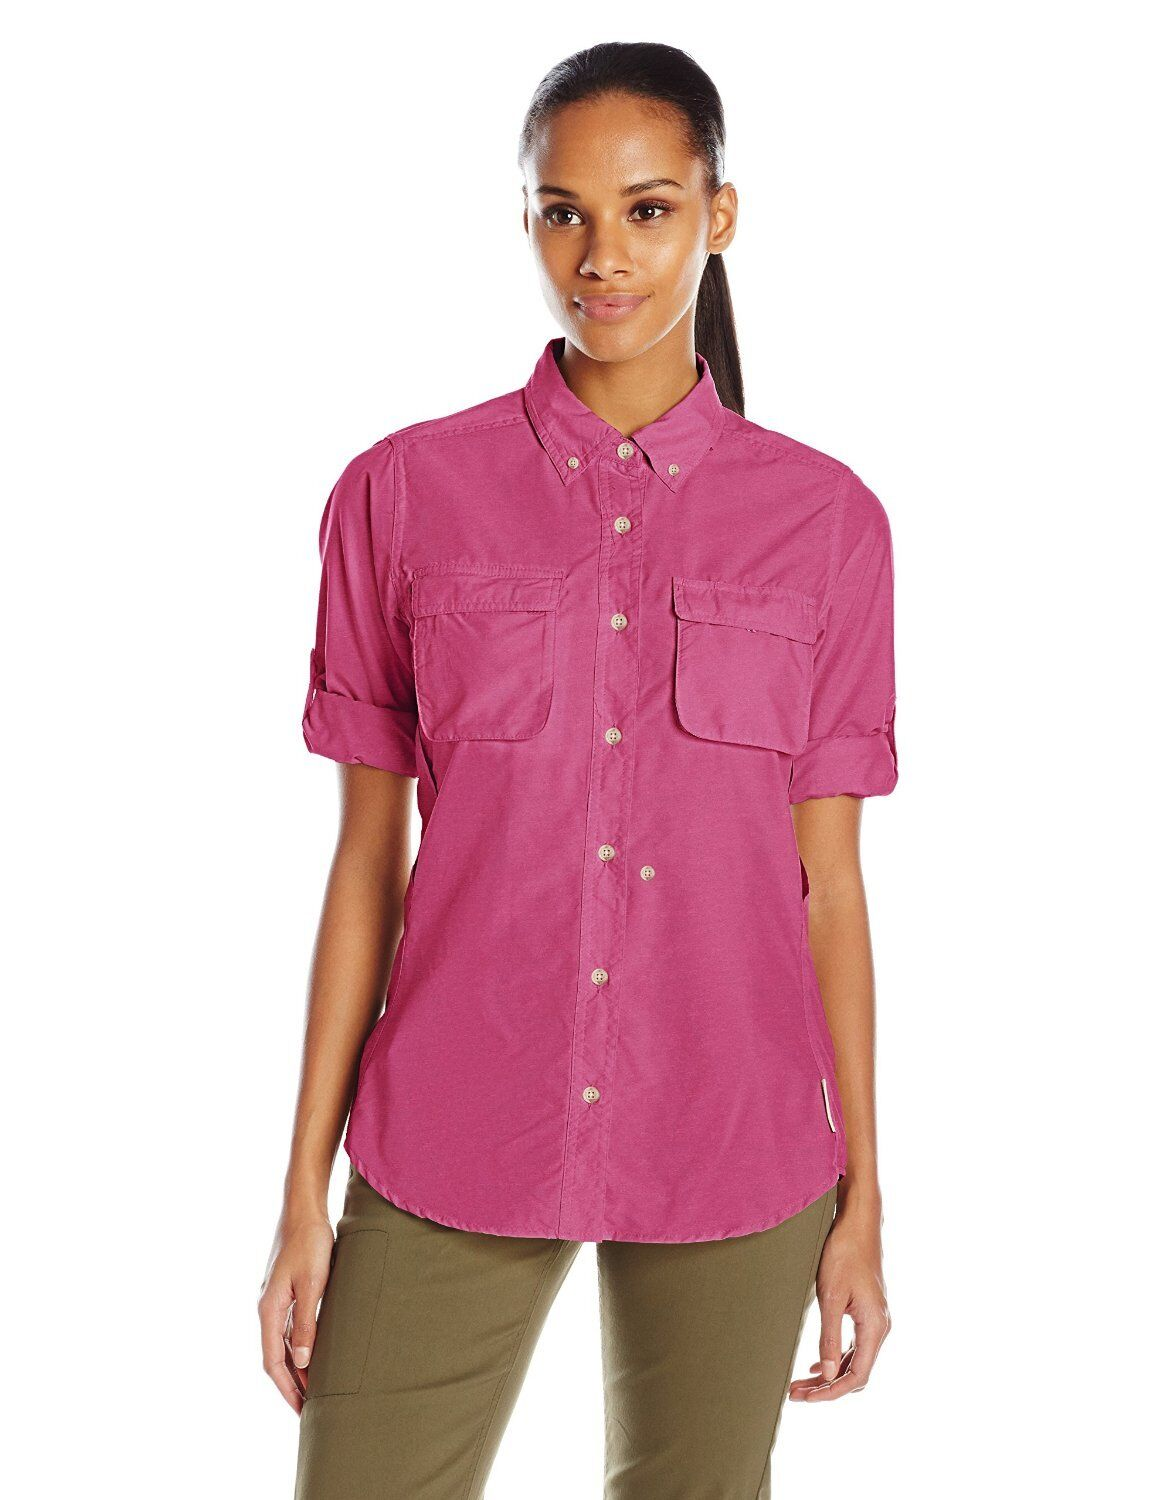 50% OFF  NEW WOMEN'S EXOFFICIO AIR STRIP LONG SLEEVE SHIRT, SMALL, MULBERRY.